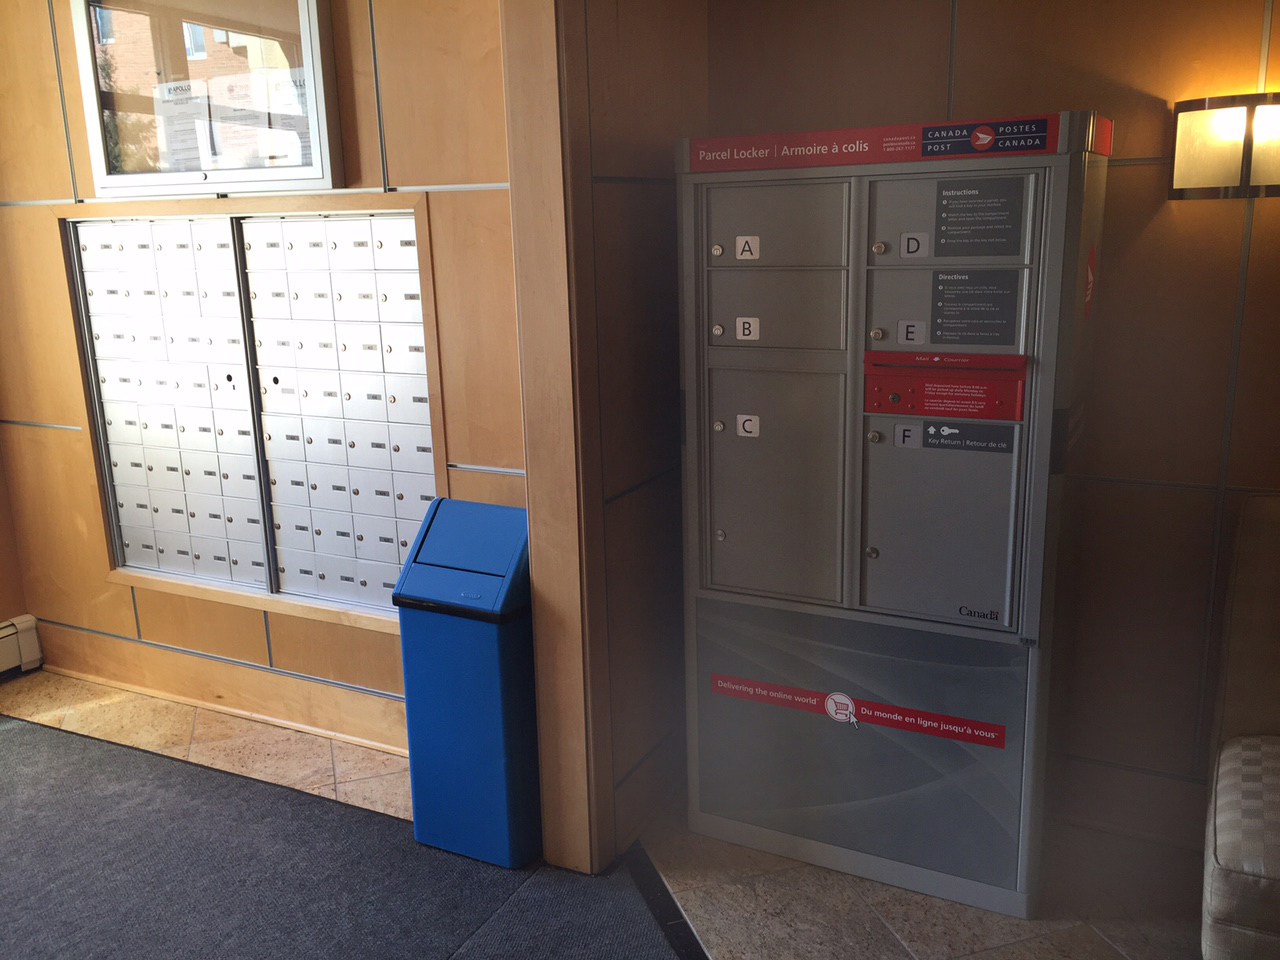 Ottawa Condo Canada Post Parcel Box